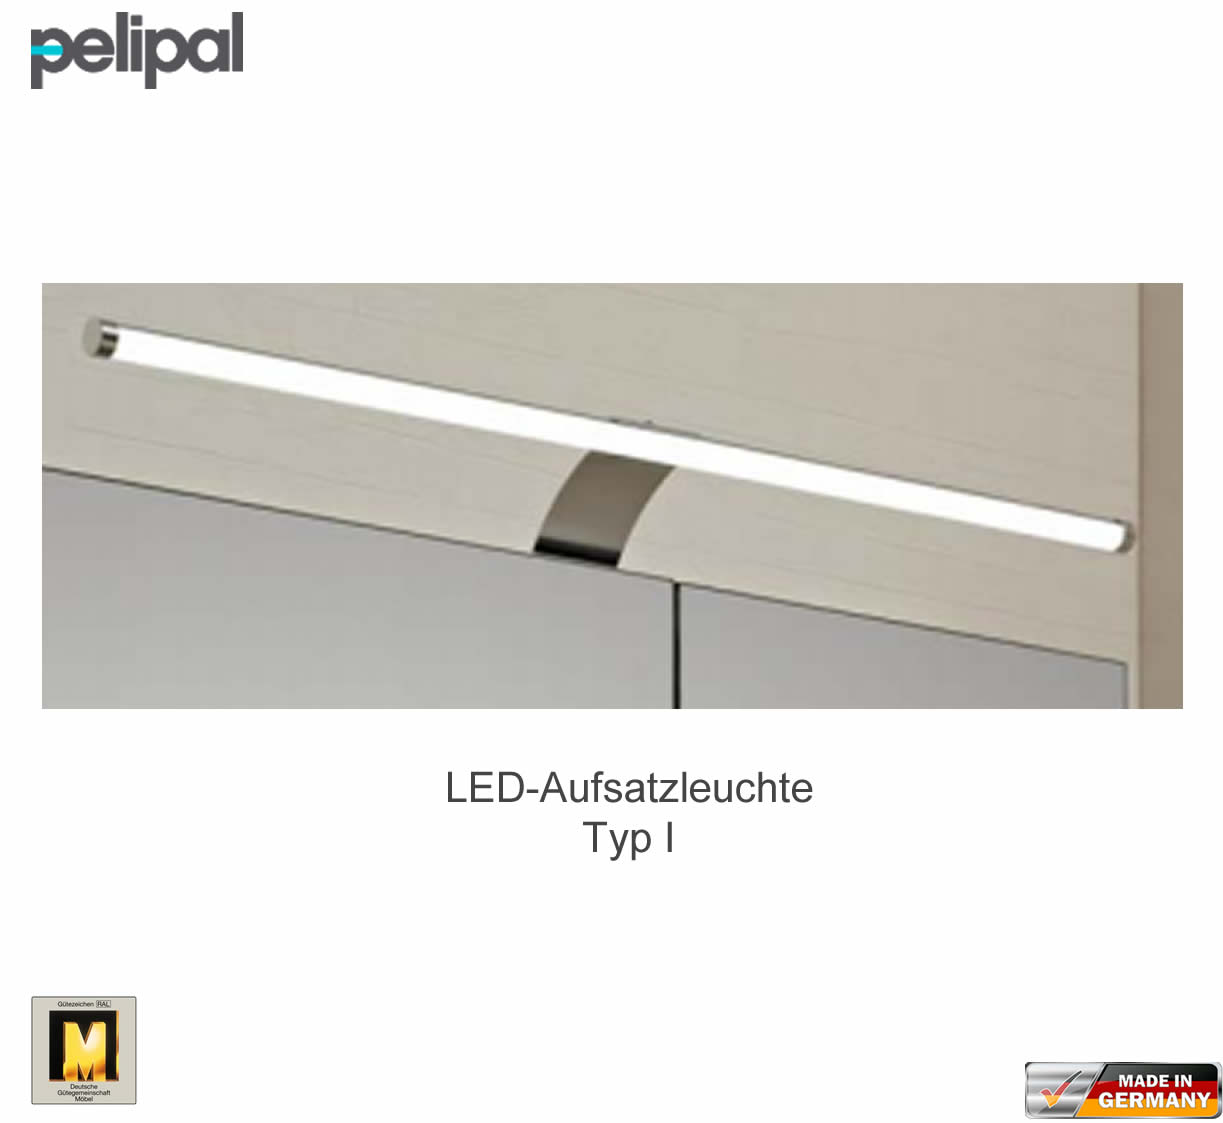 pelipal neutraler spiegelschrank s5 60 cm mit led. Black Bedroom Furniture Sets. Home Design Ideas